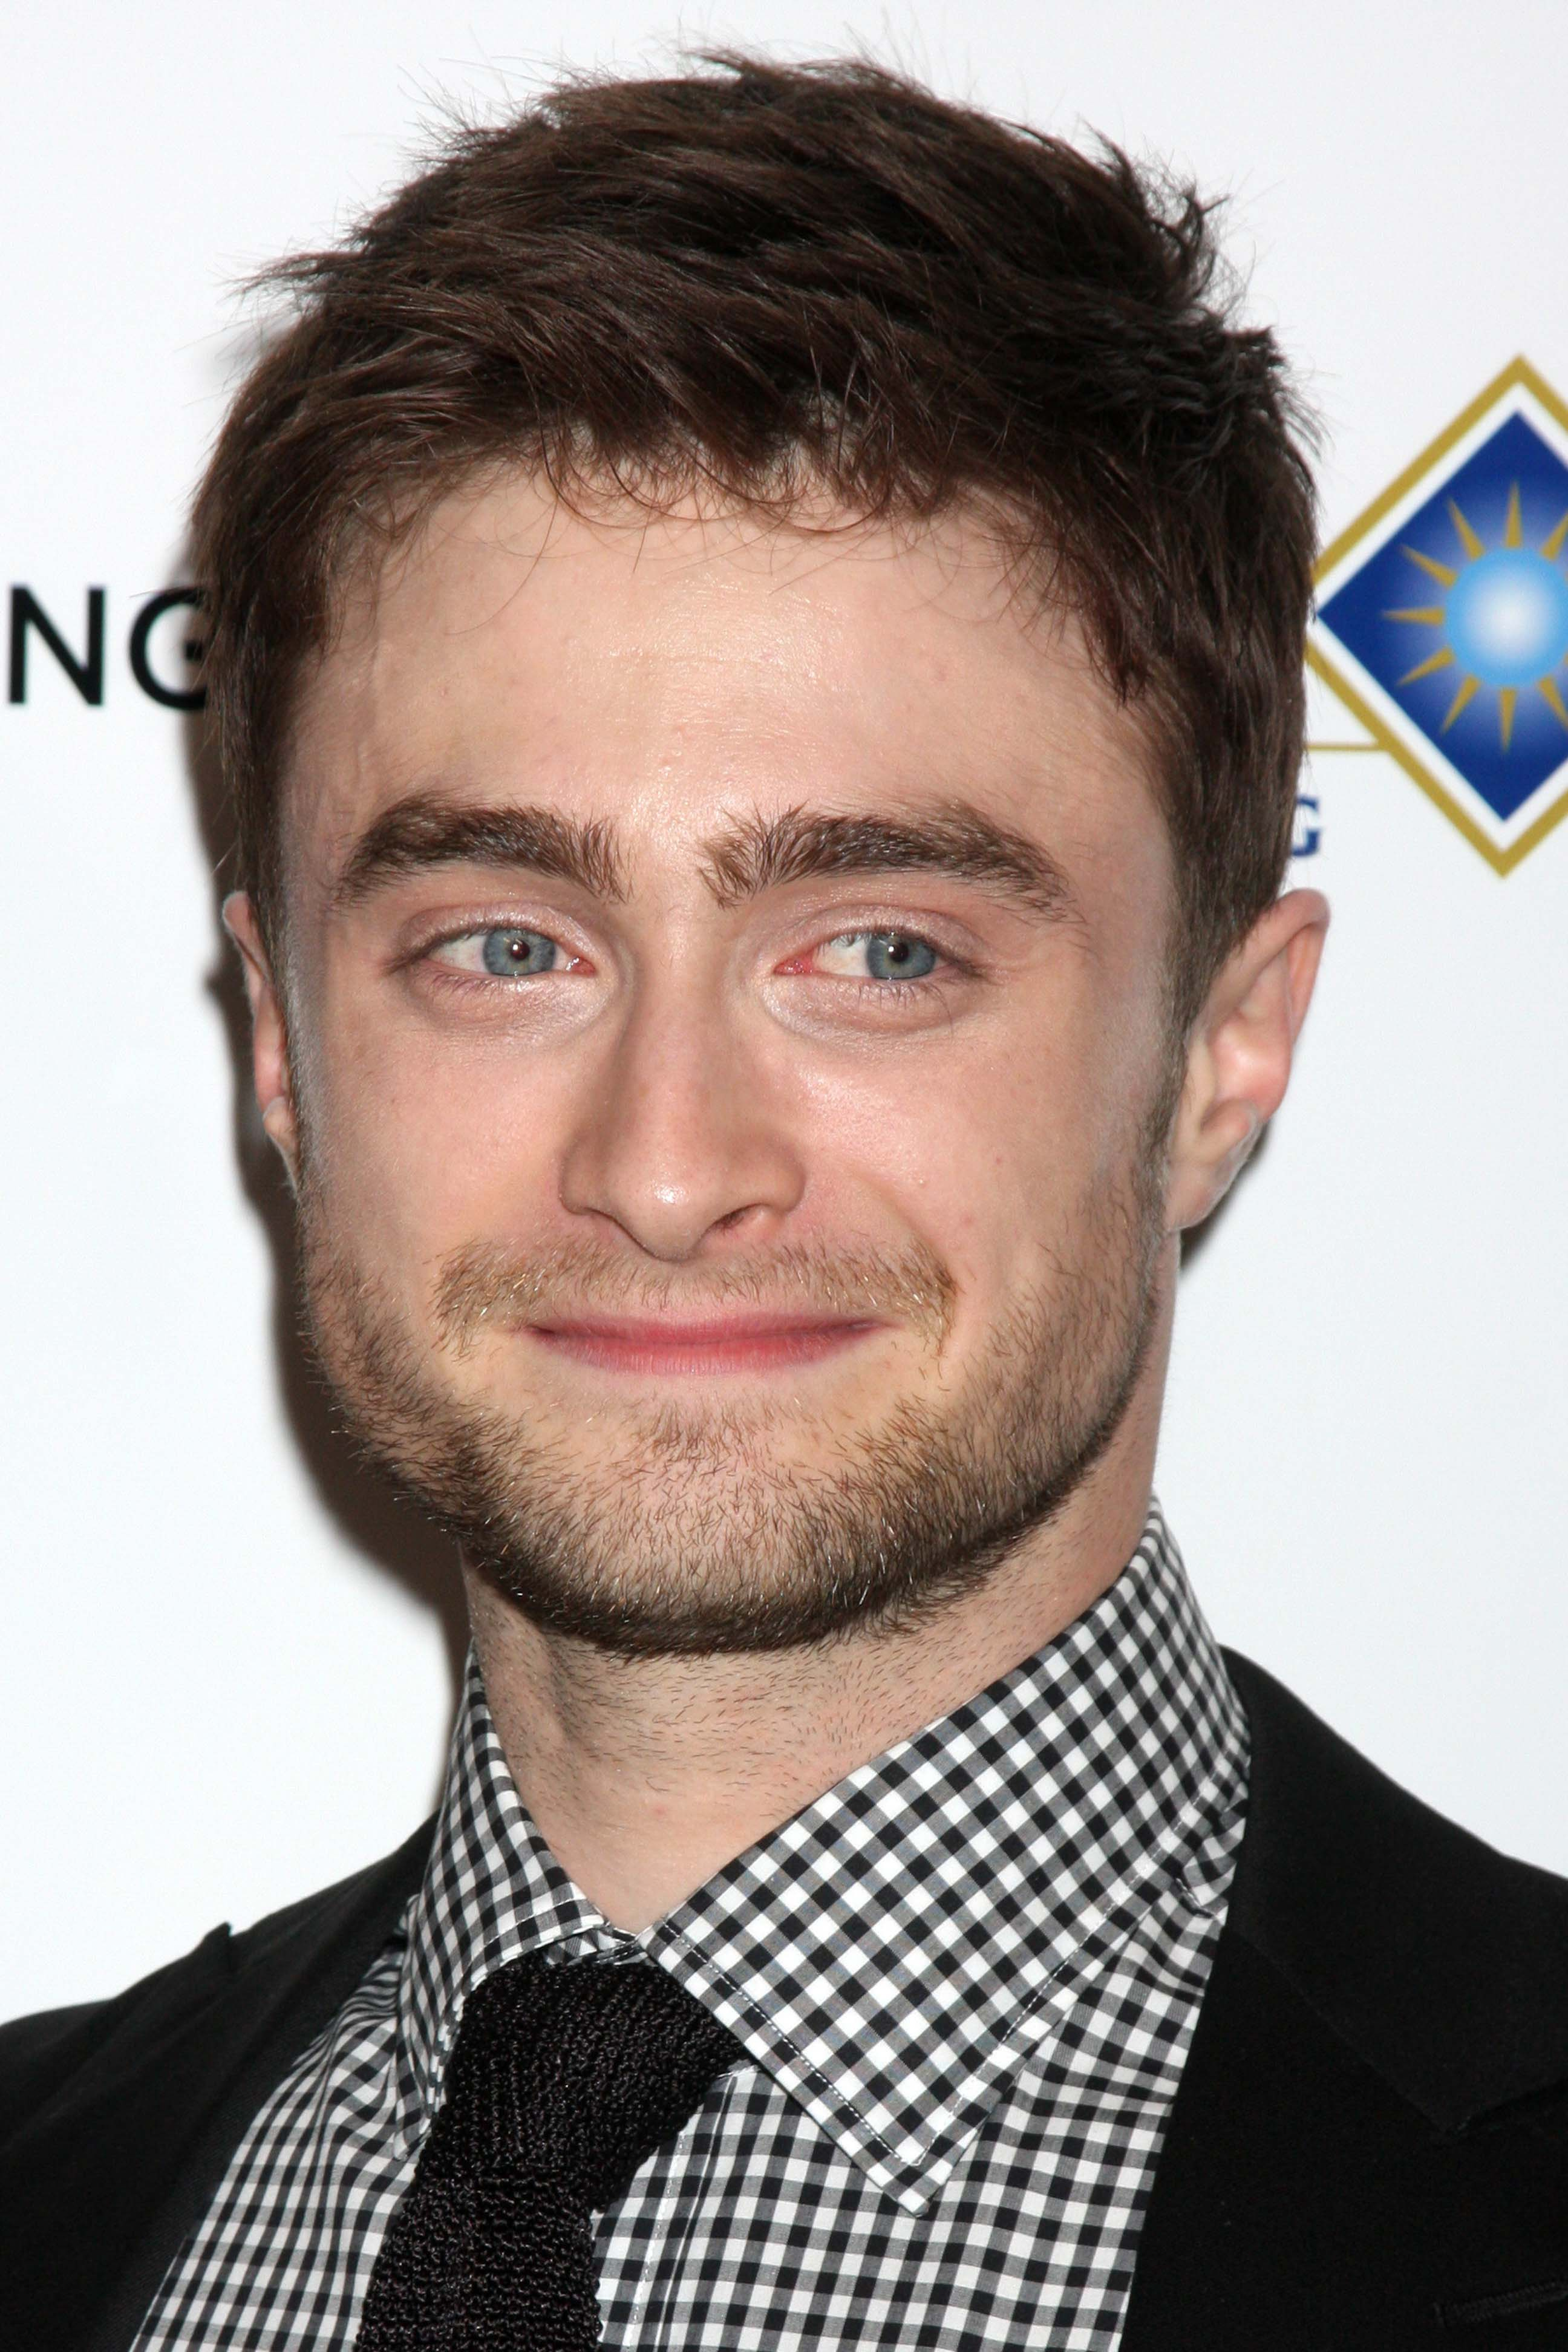 Daniel Radcliffe's Casual Ivy